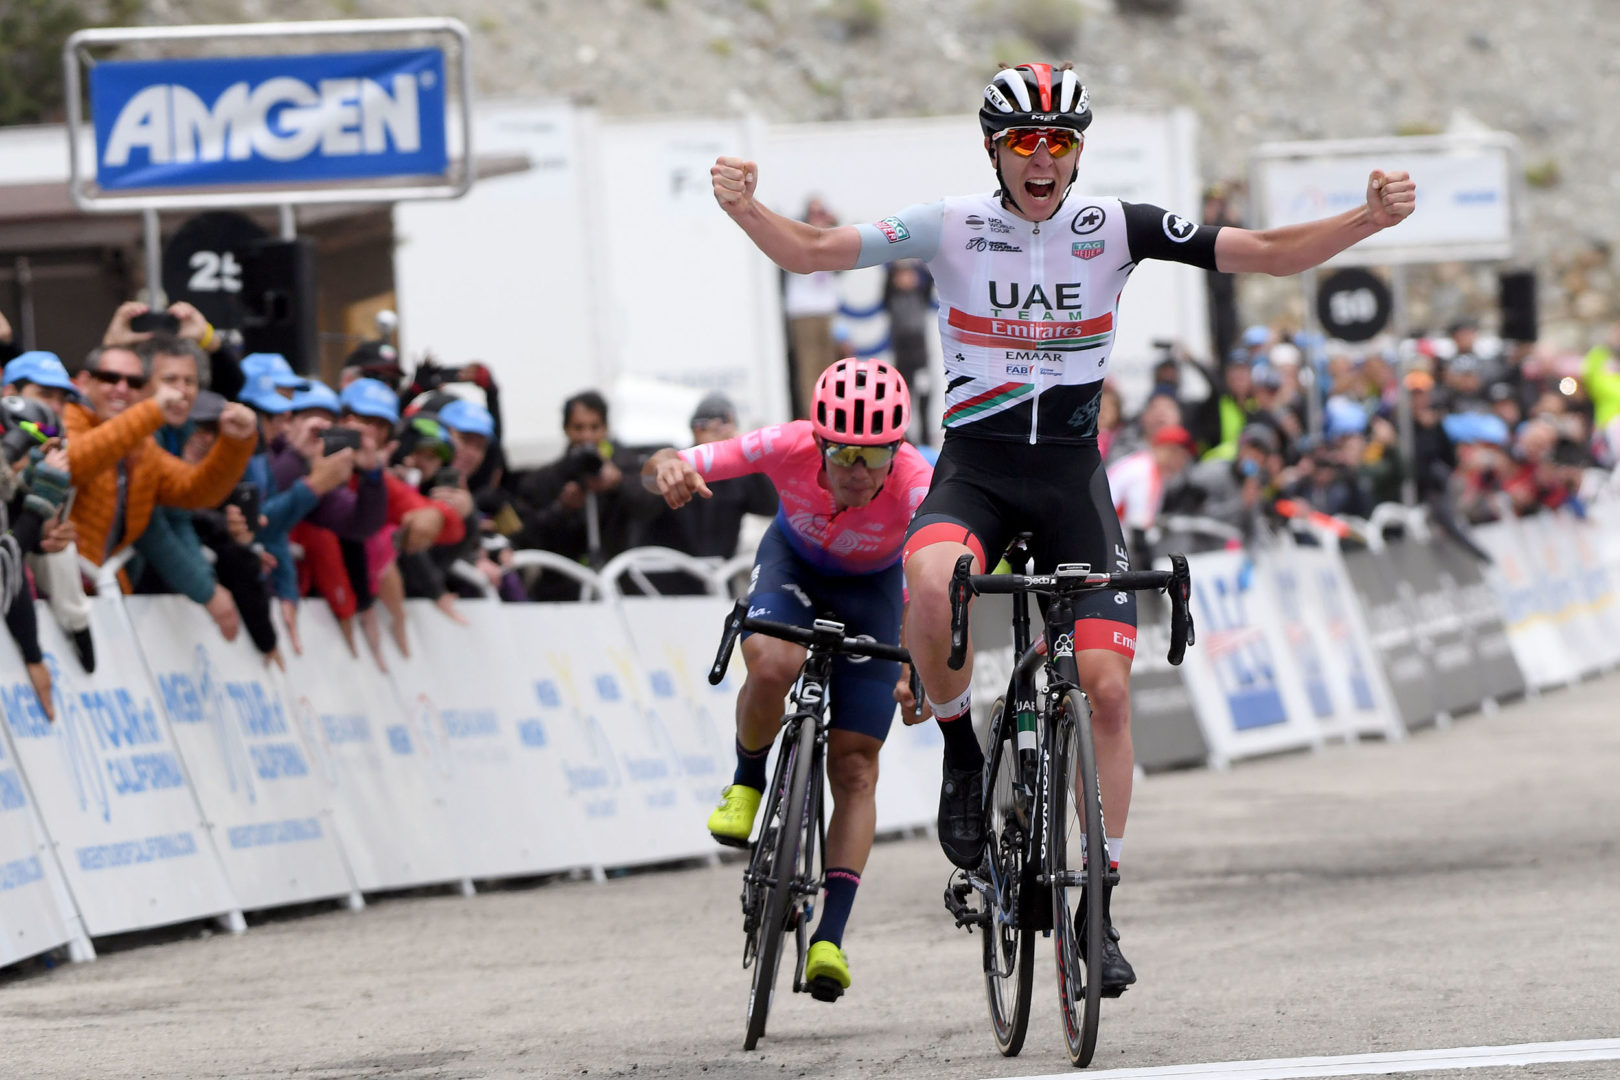 ONTARIO, CALIFORNIA - MAY 17:  Arrival / Celebration / Tadej Pogacar of Slovenia riding for UAE Team Emirates / Sergio Andres Higuita Garcia of Colombia riding for EF Education First during the 14th Amgen Tour of California 2019, Stage 6 a 127,5km stage from Ontario to Mt. Baldy 1959m / #AmgenTOC / @AmgenTOC / on May 17, 2019 in Ontario, United States. (Photo by Harry How/Getty Images)